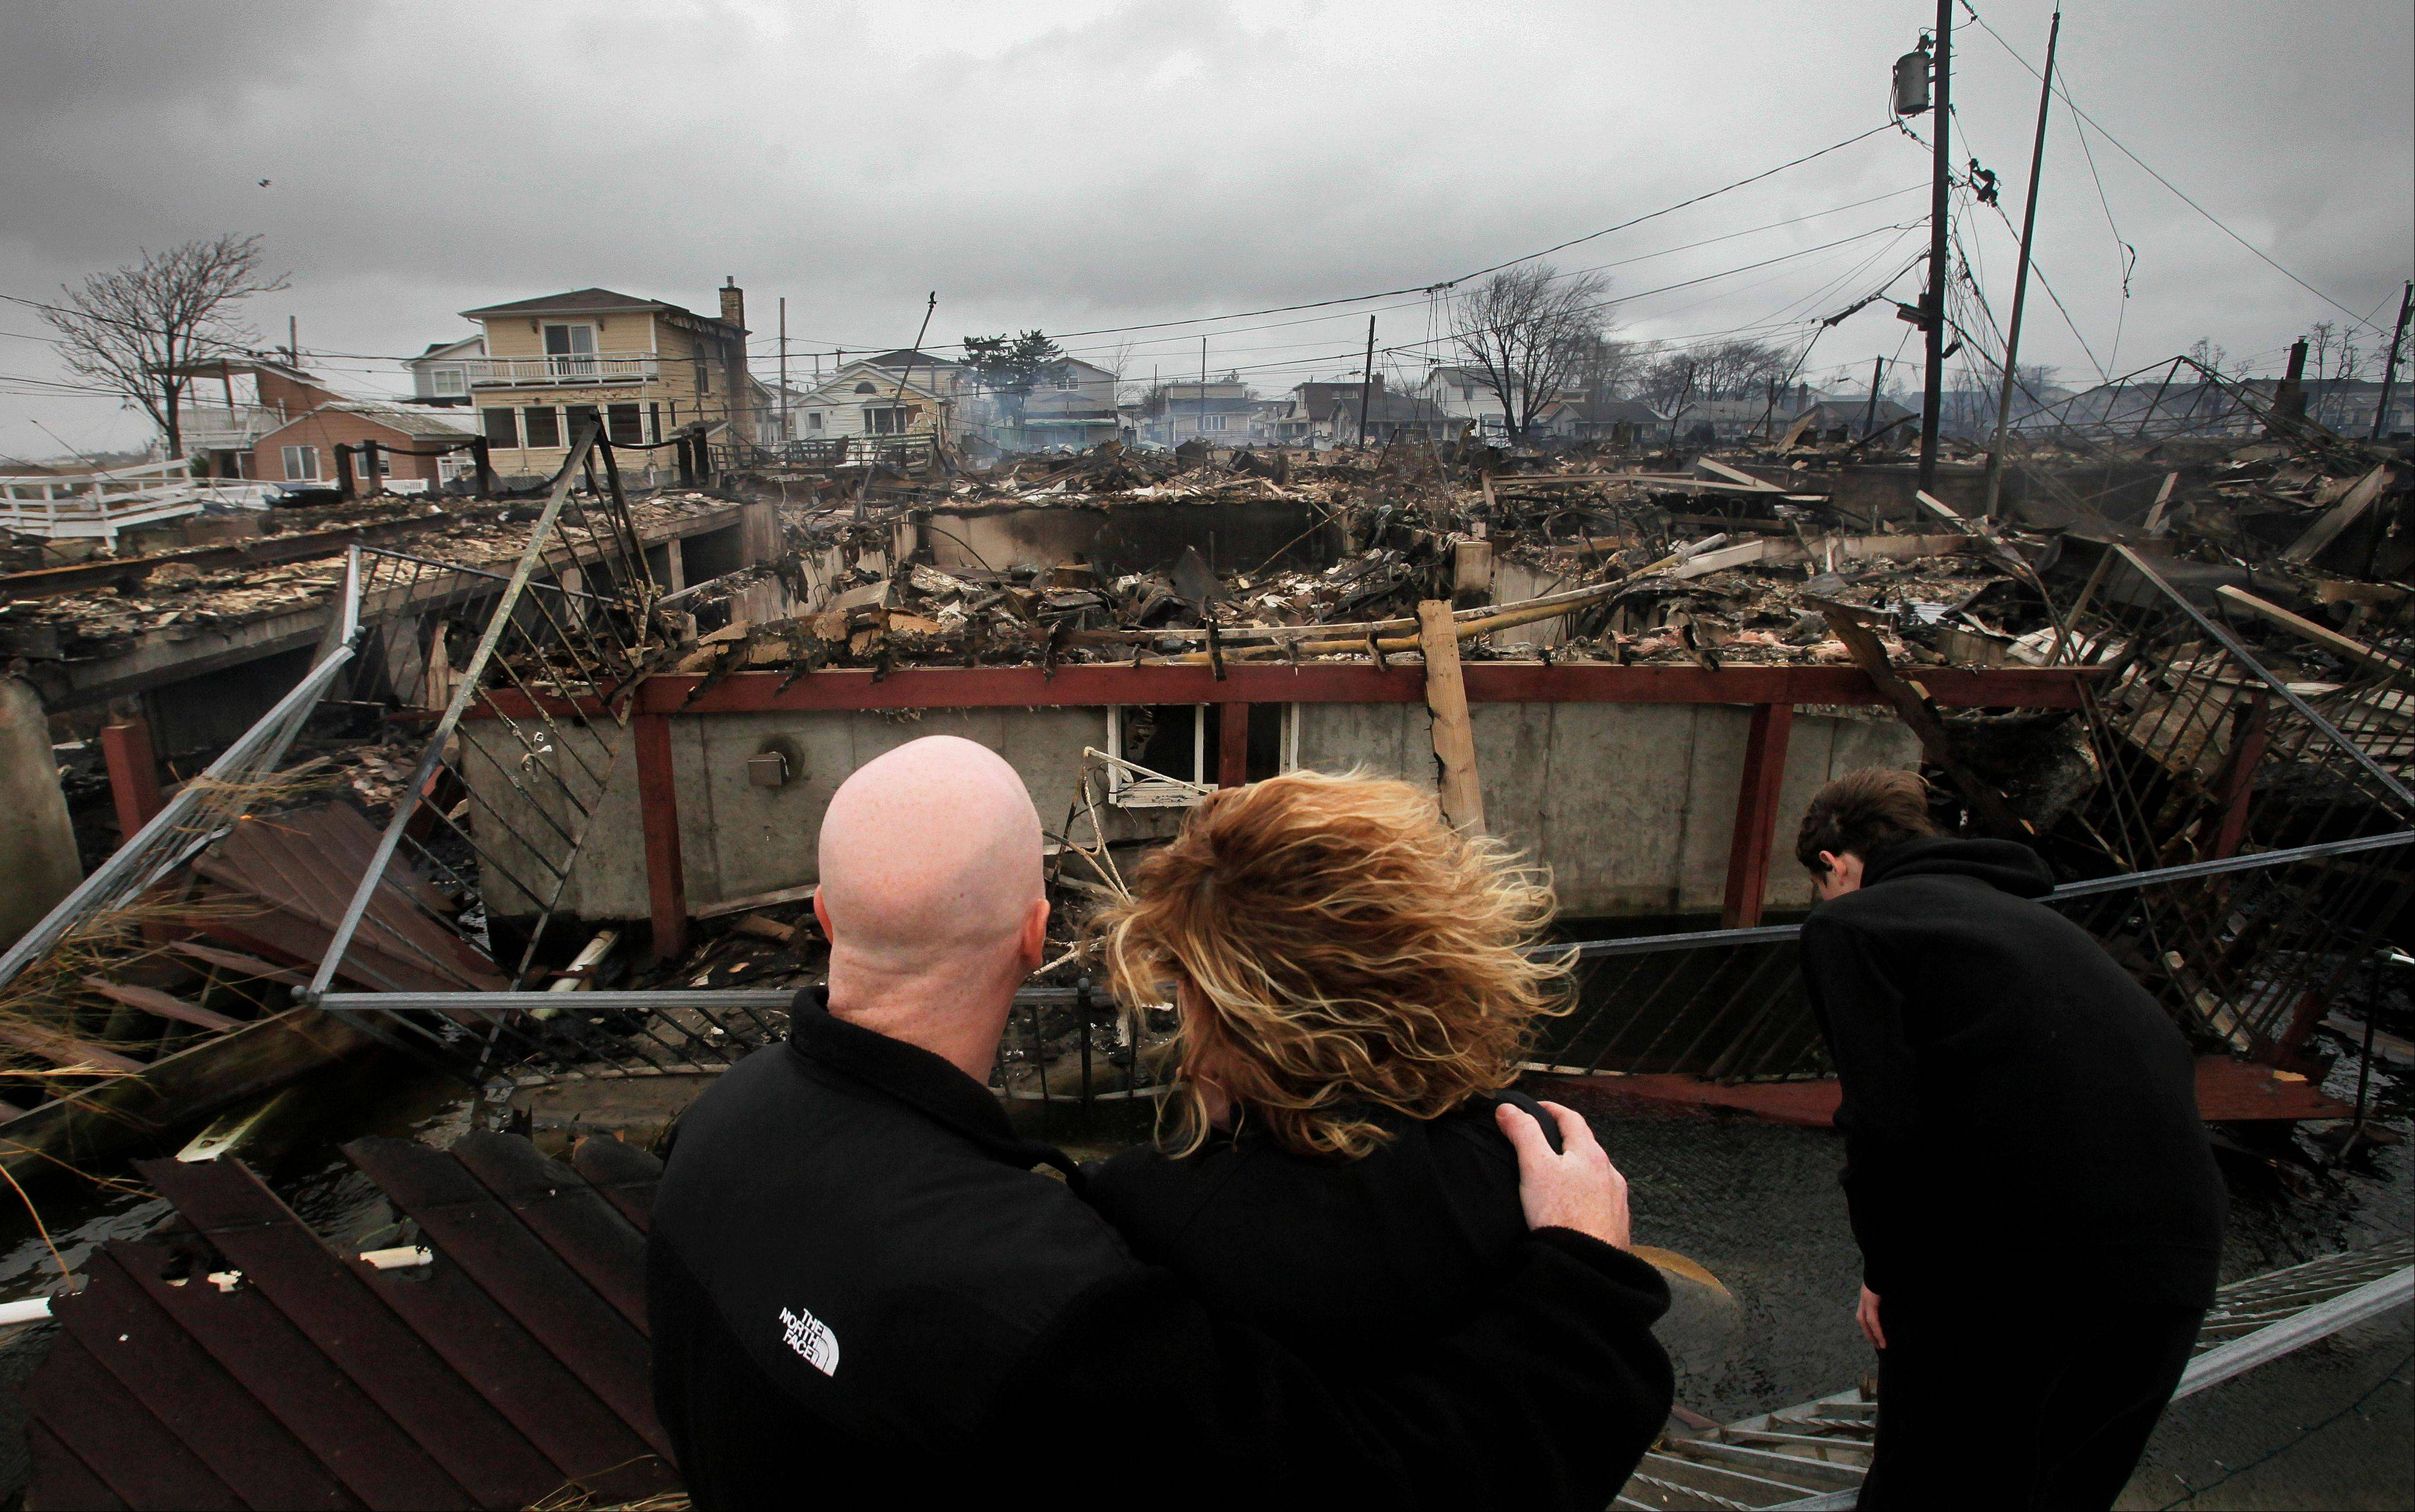 Robert Connolly, left, embraces his wife, Laura, as they survey the remains of the home owned by her parents that burned to the ground in the Breezy Point section of New York, during Superstorm Sandy. In Google's 12th annual roundup of trending searches, Superstorm Sandy, the damaging storm that knocked out power and flooded parts of the East Coast in the midst of a U.S. presidential campaign, was third.